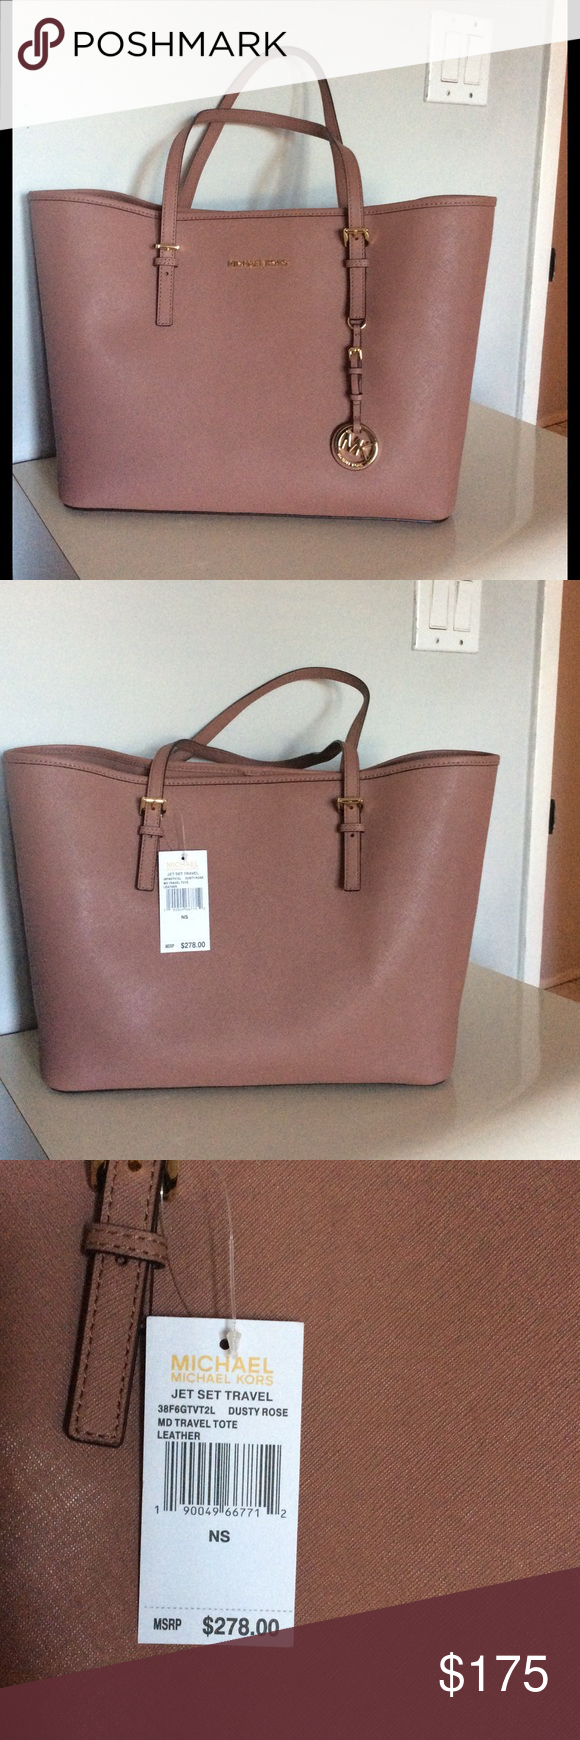 Michael kors large tote New with tags never used . Large size AUTHENTIC !!!! NO TRADES Michael Kors Bags Totes